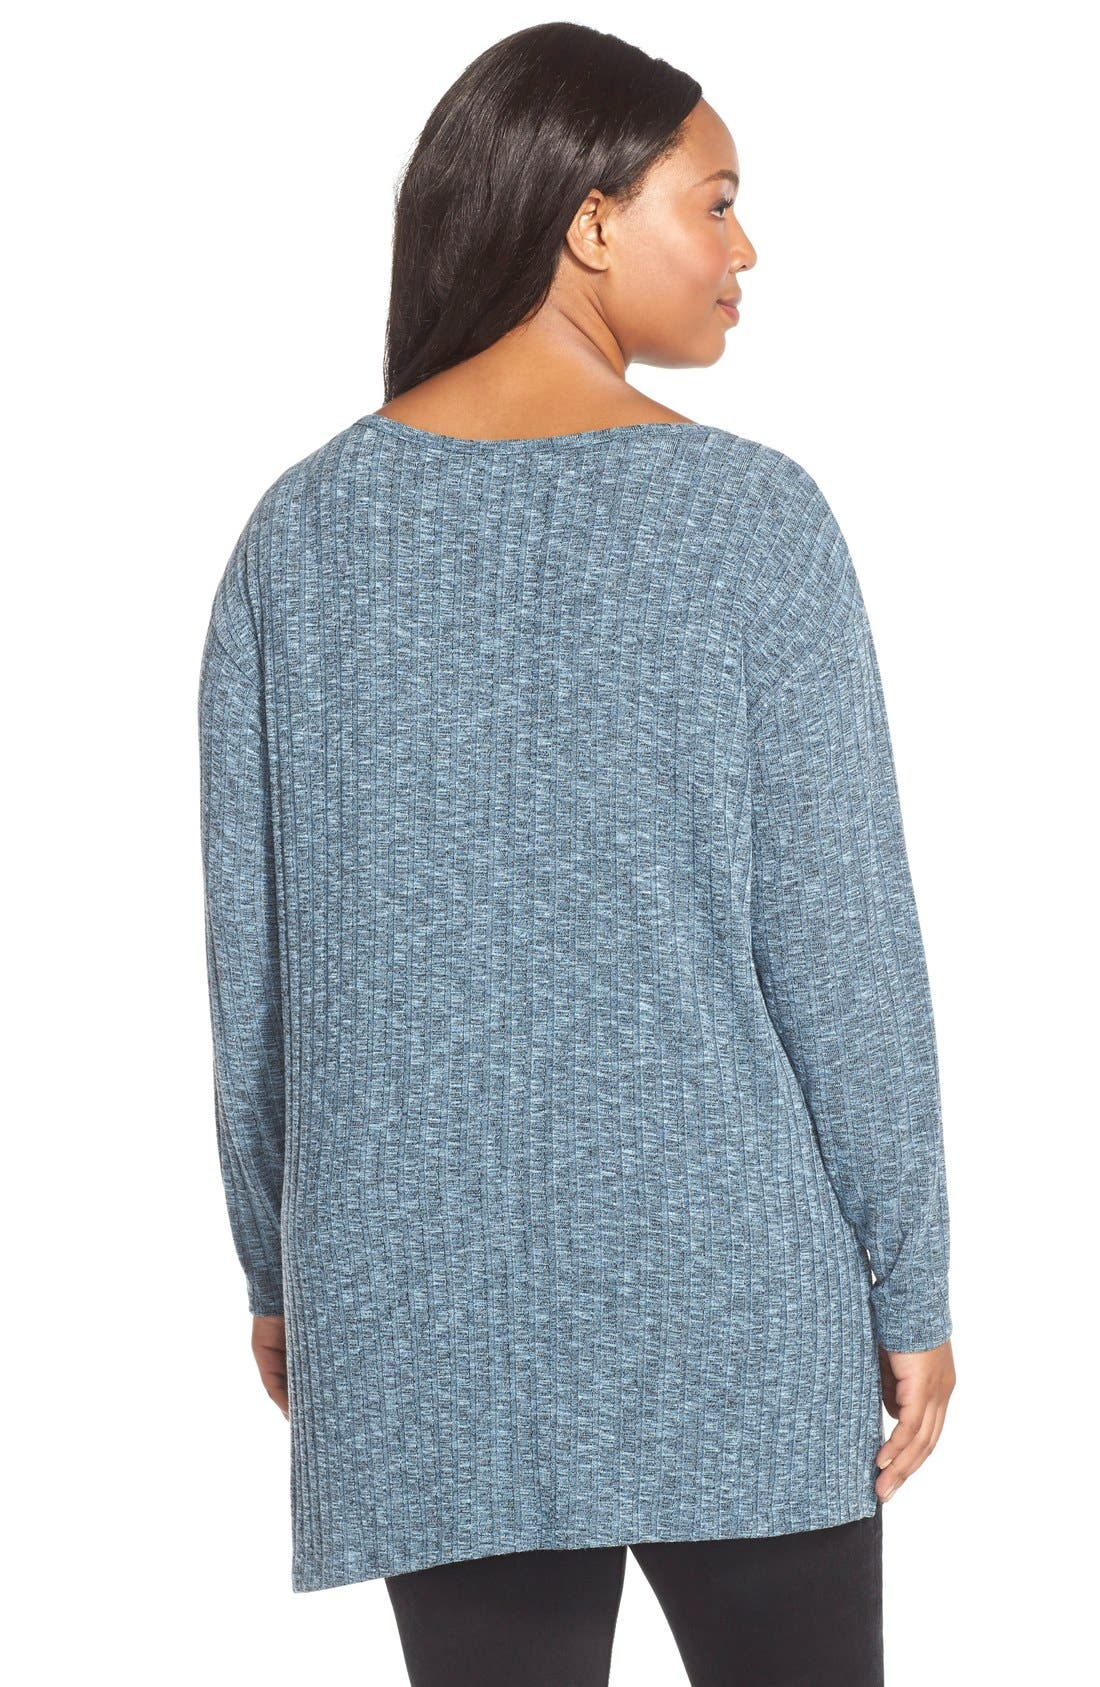 Asymmetrical Slub Knit Tunic,                             Alternate thumbnail 2, color,                             Blue Black Slub Rib Pattern